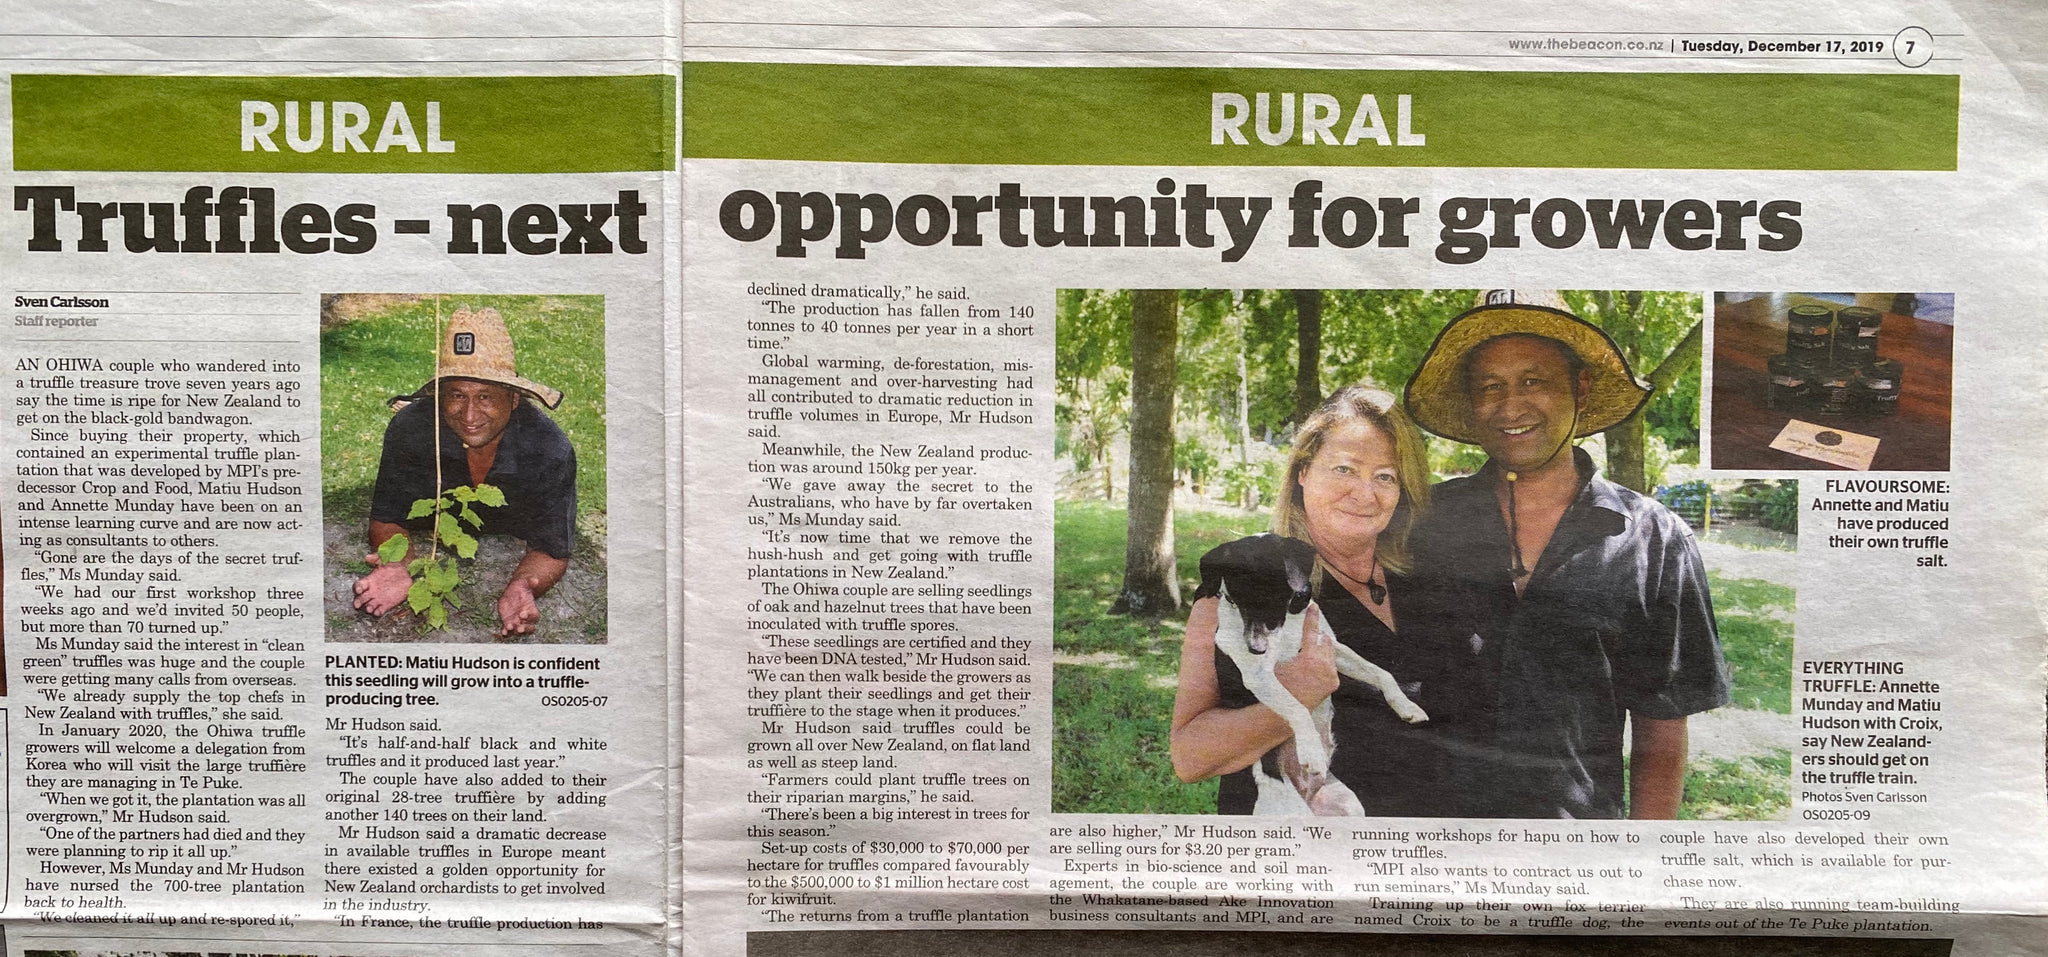 Truffle - Next Opportunity for Growers